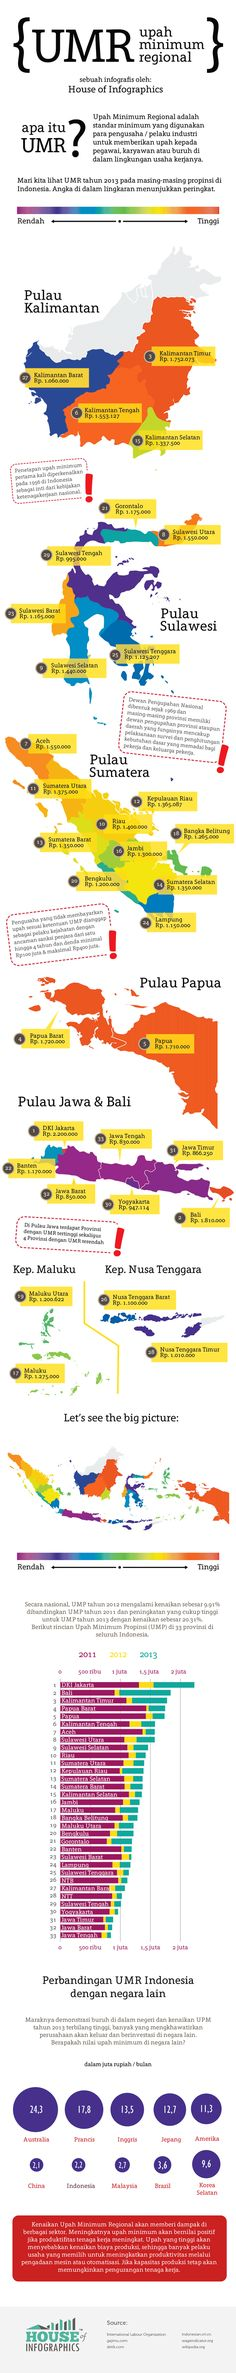 Infografis : Upah Minimum Regional 2013 Indonesia